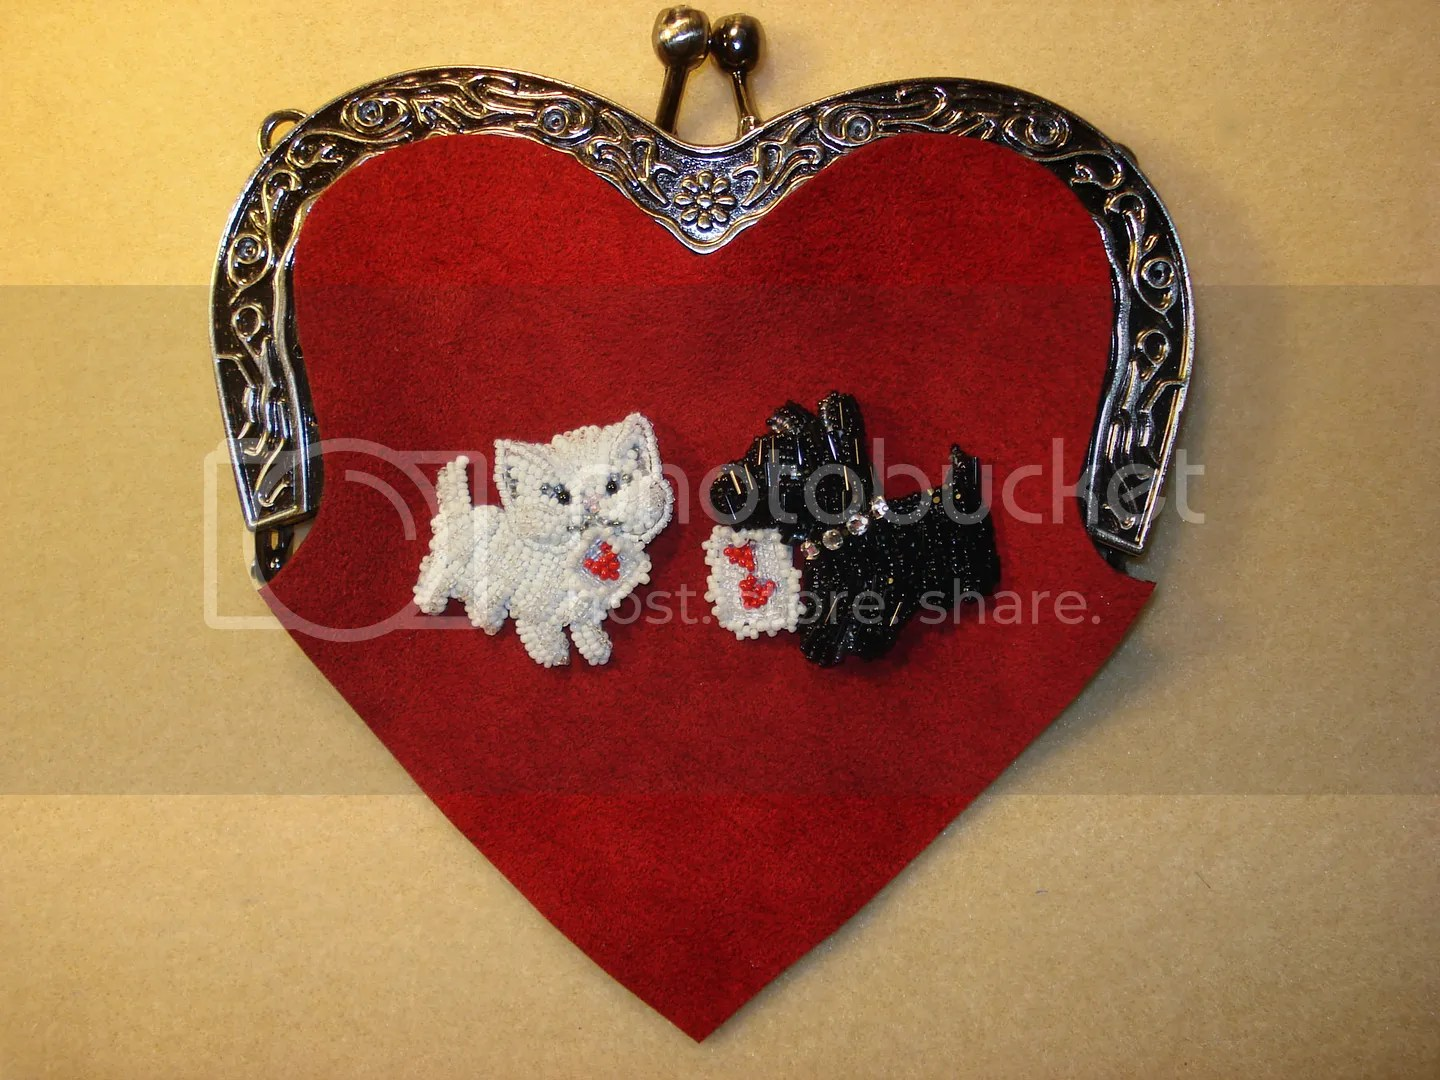 beaded cat scottie dog heart shaped purse bead embroidery etsy custom order